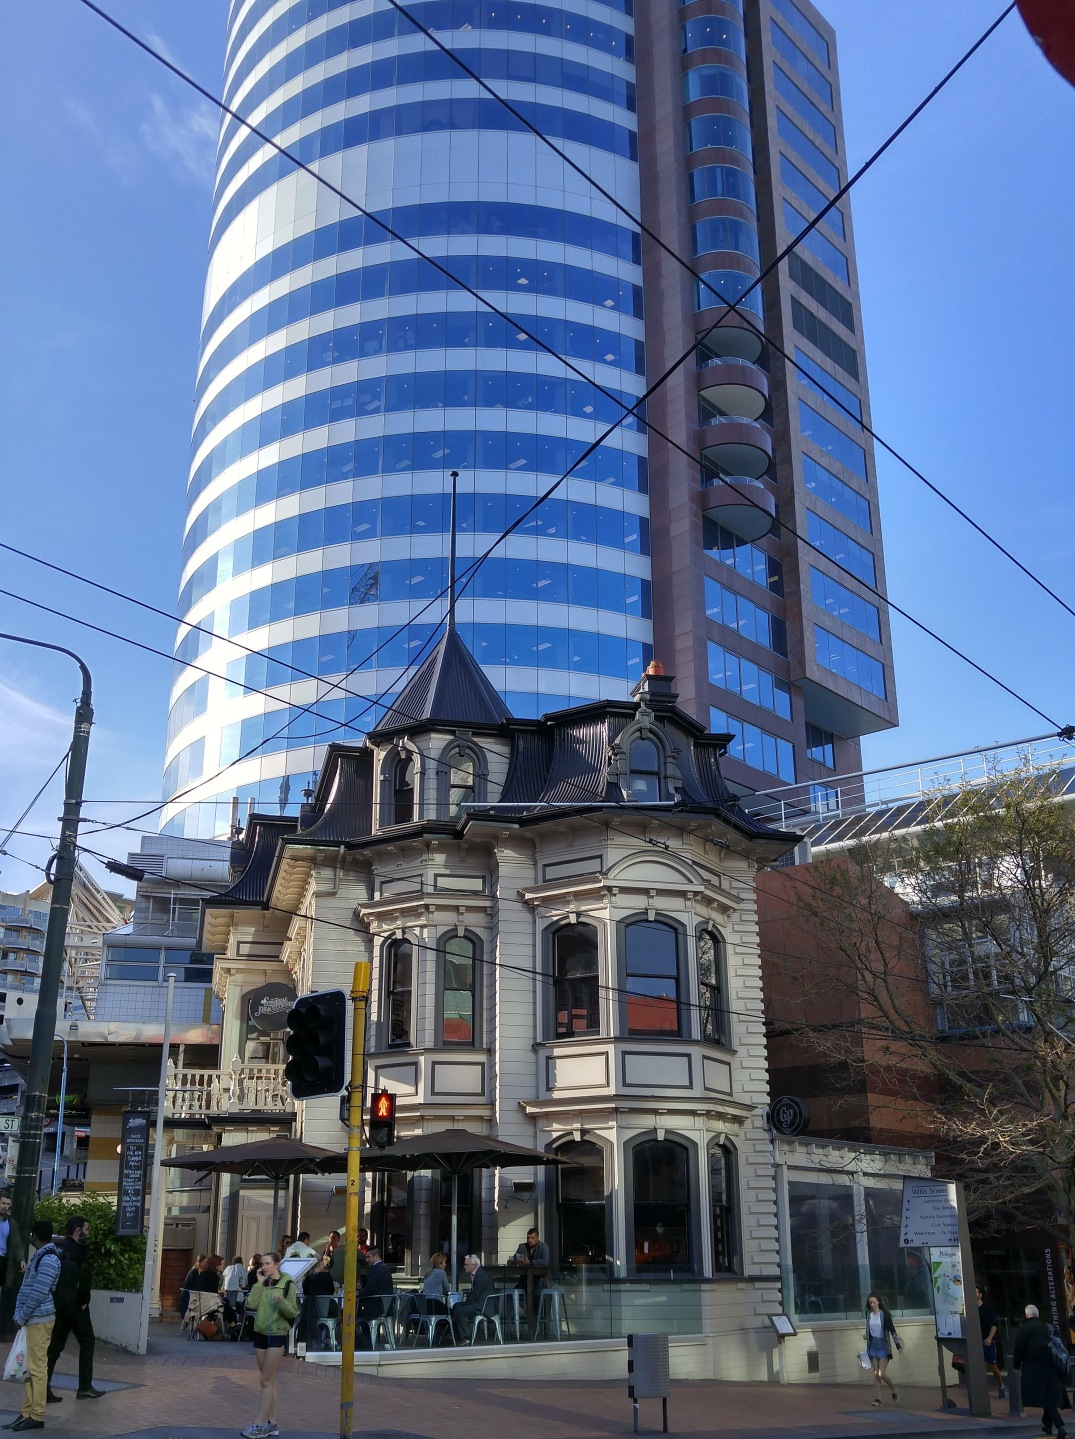 Wellington architecture is a constant juxtaposition.